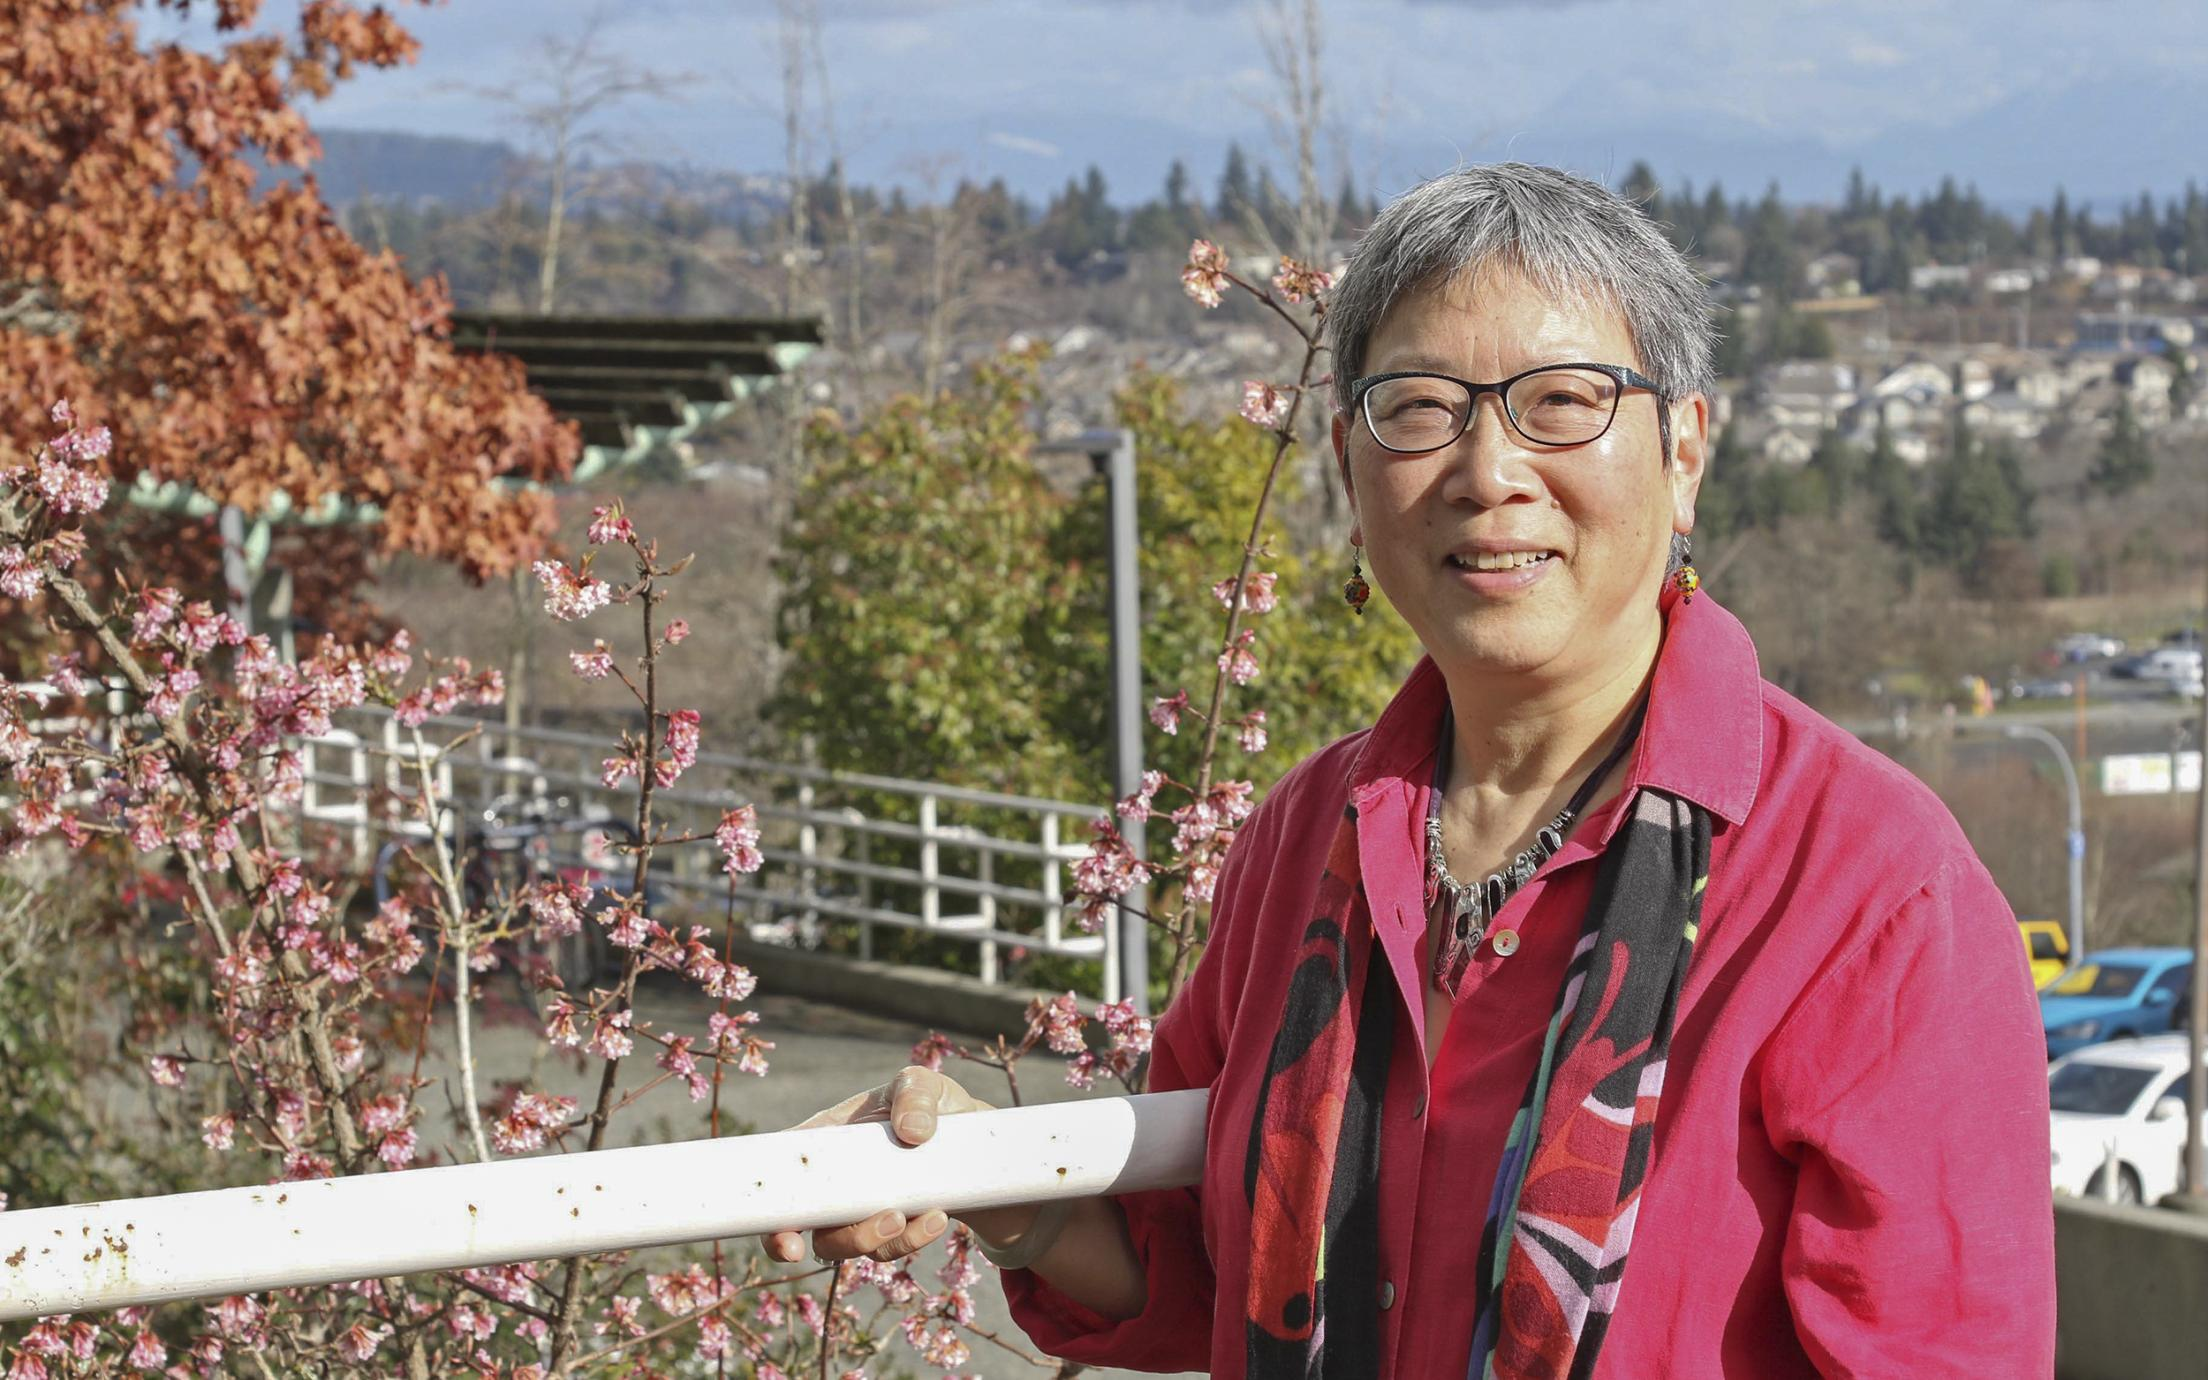 Dr. Imogene Lim stands along a guard rail with the Nanaimo cityscape in the background.